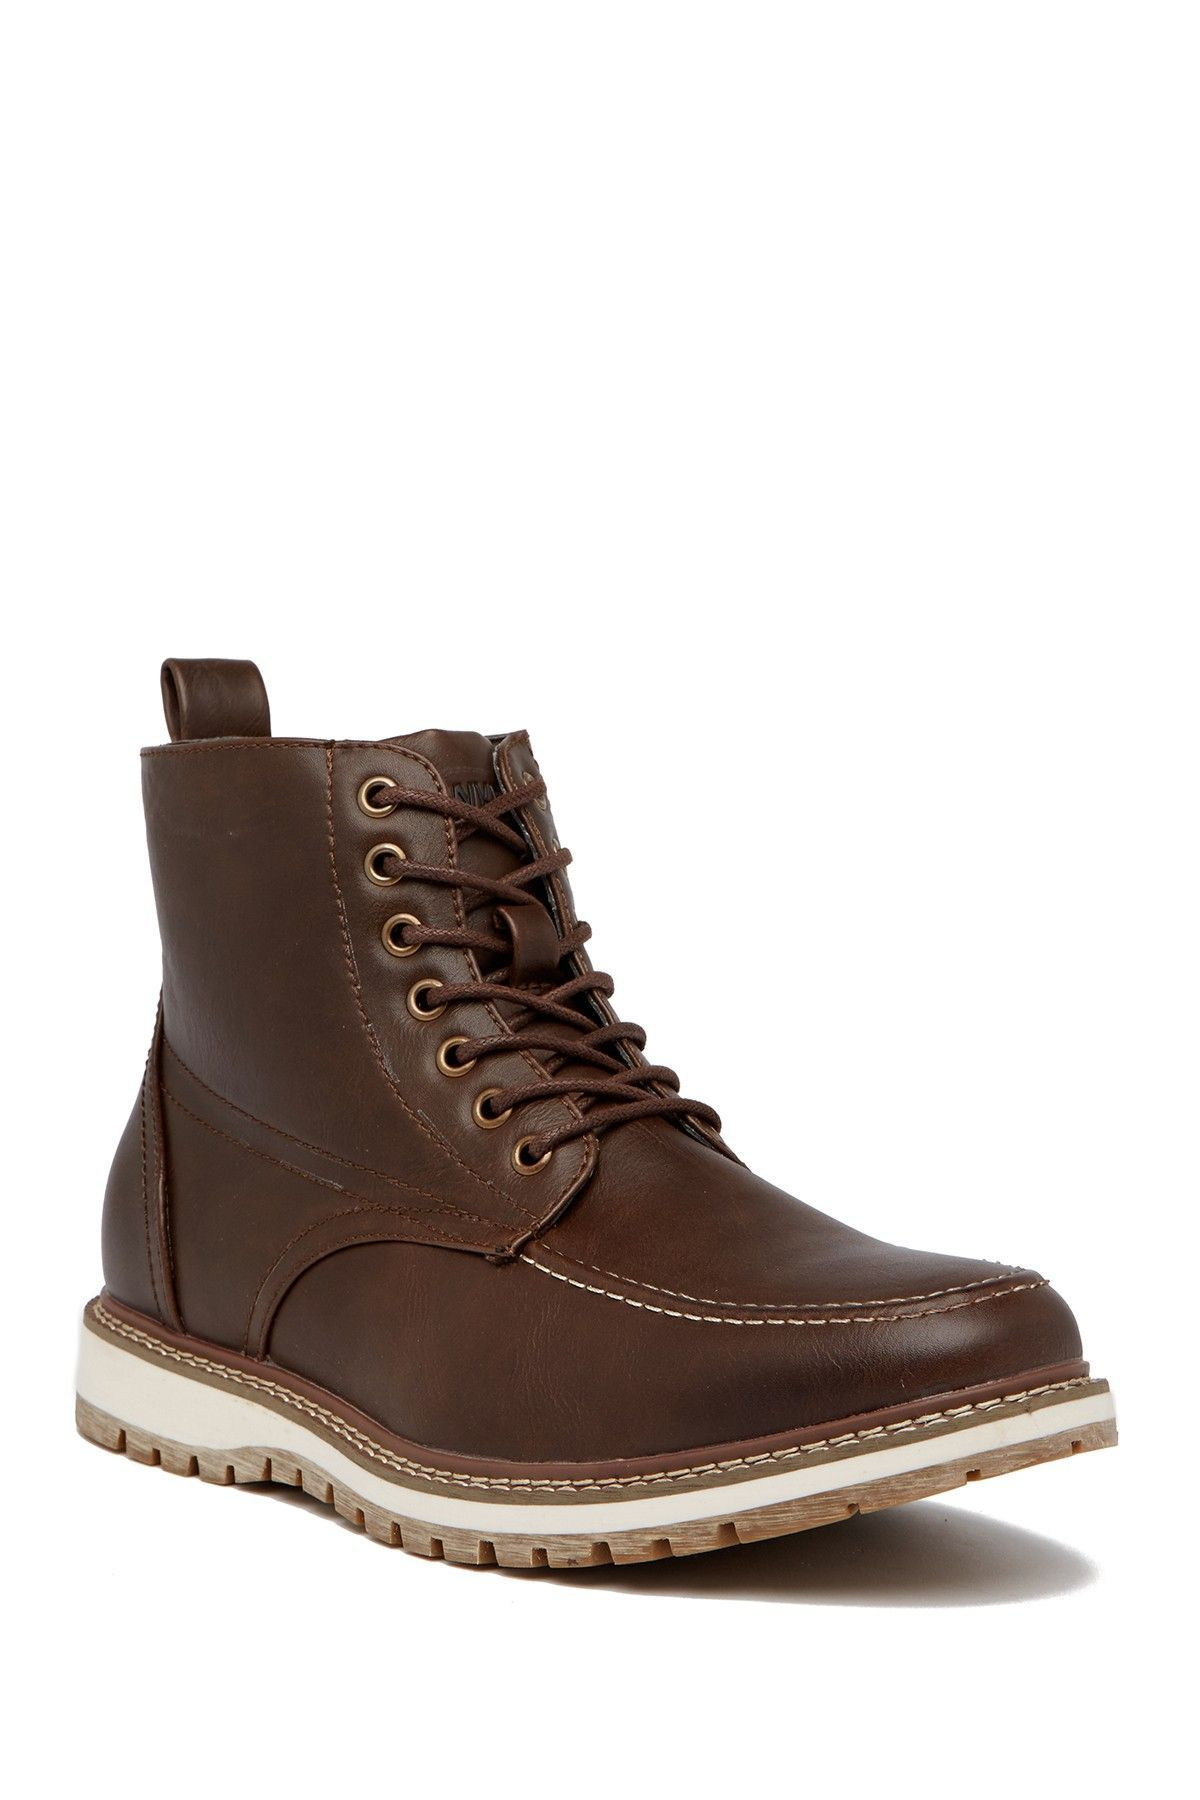 Hawke & Co. Sierra LaceUp Boot Mens boots fashion